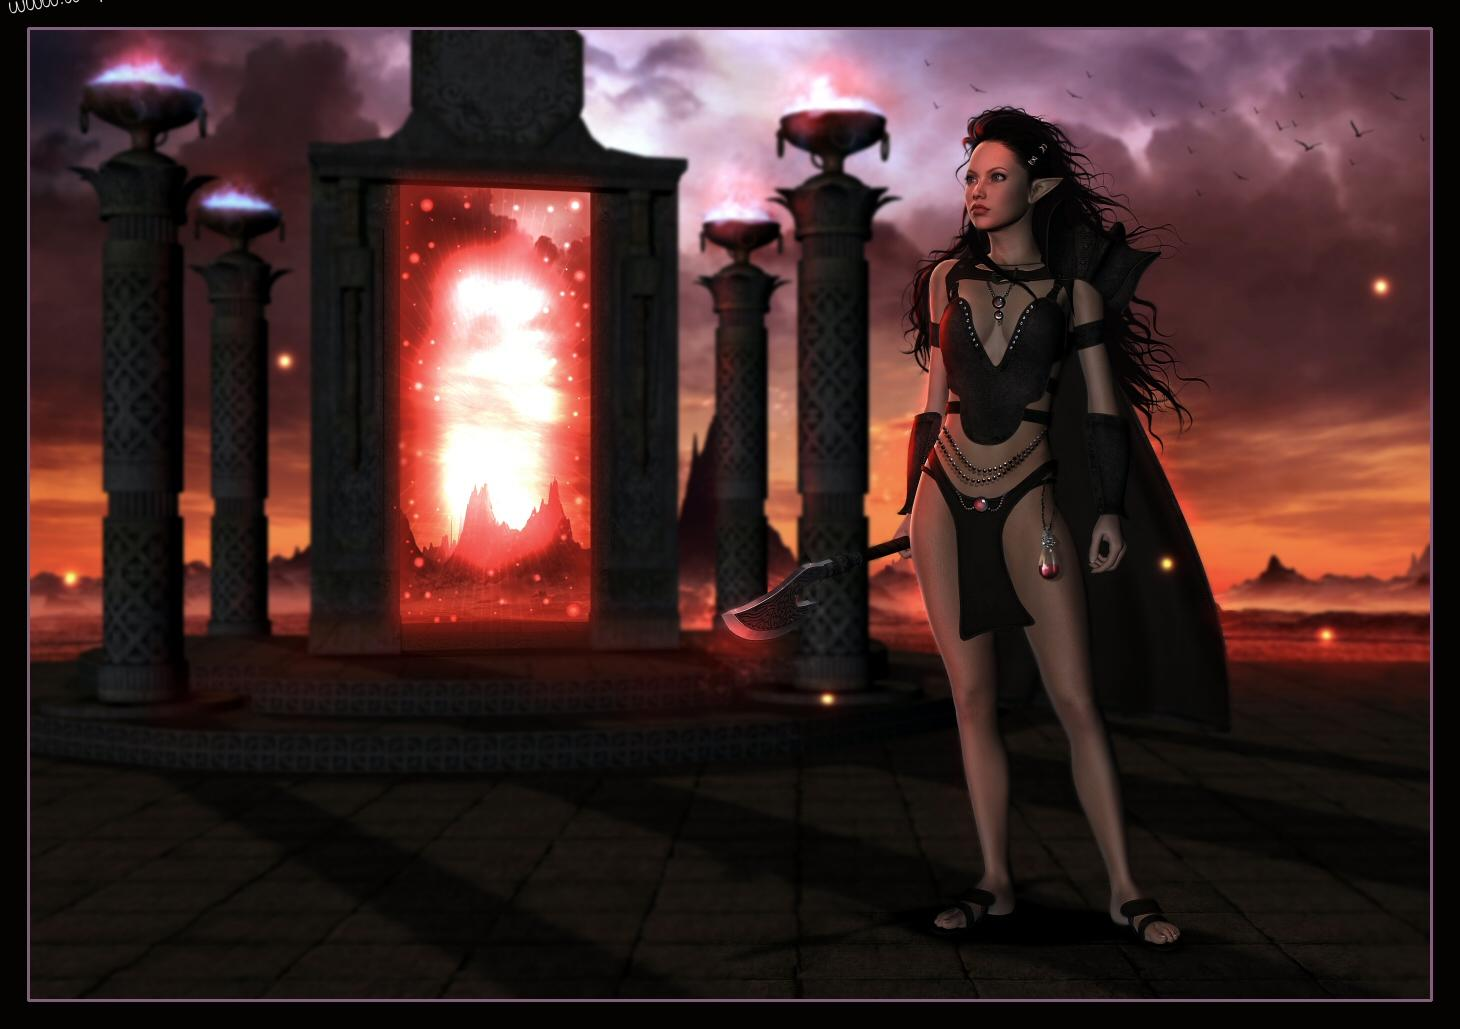 Gallery the dark elf lover 3d pic  hentia scenes